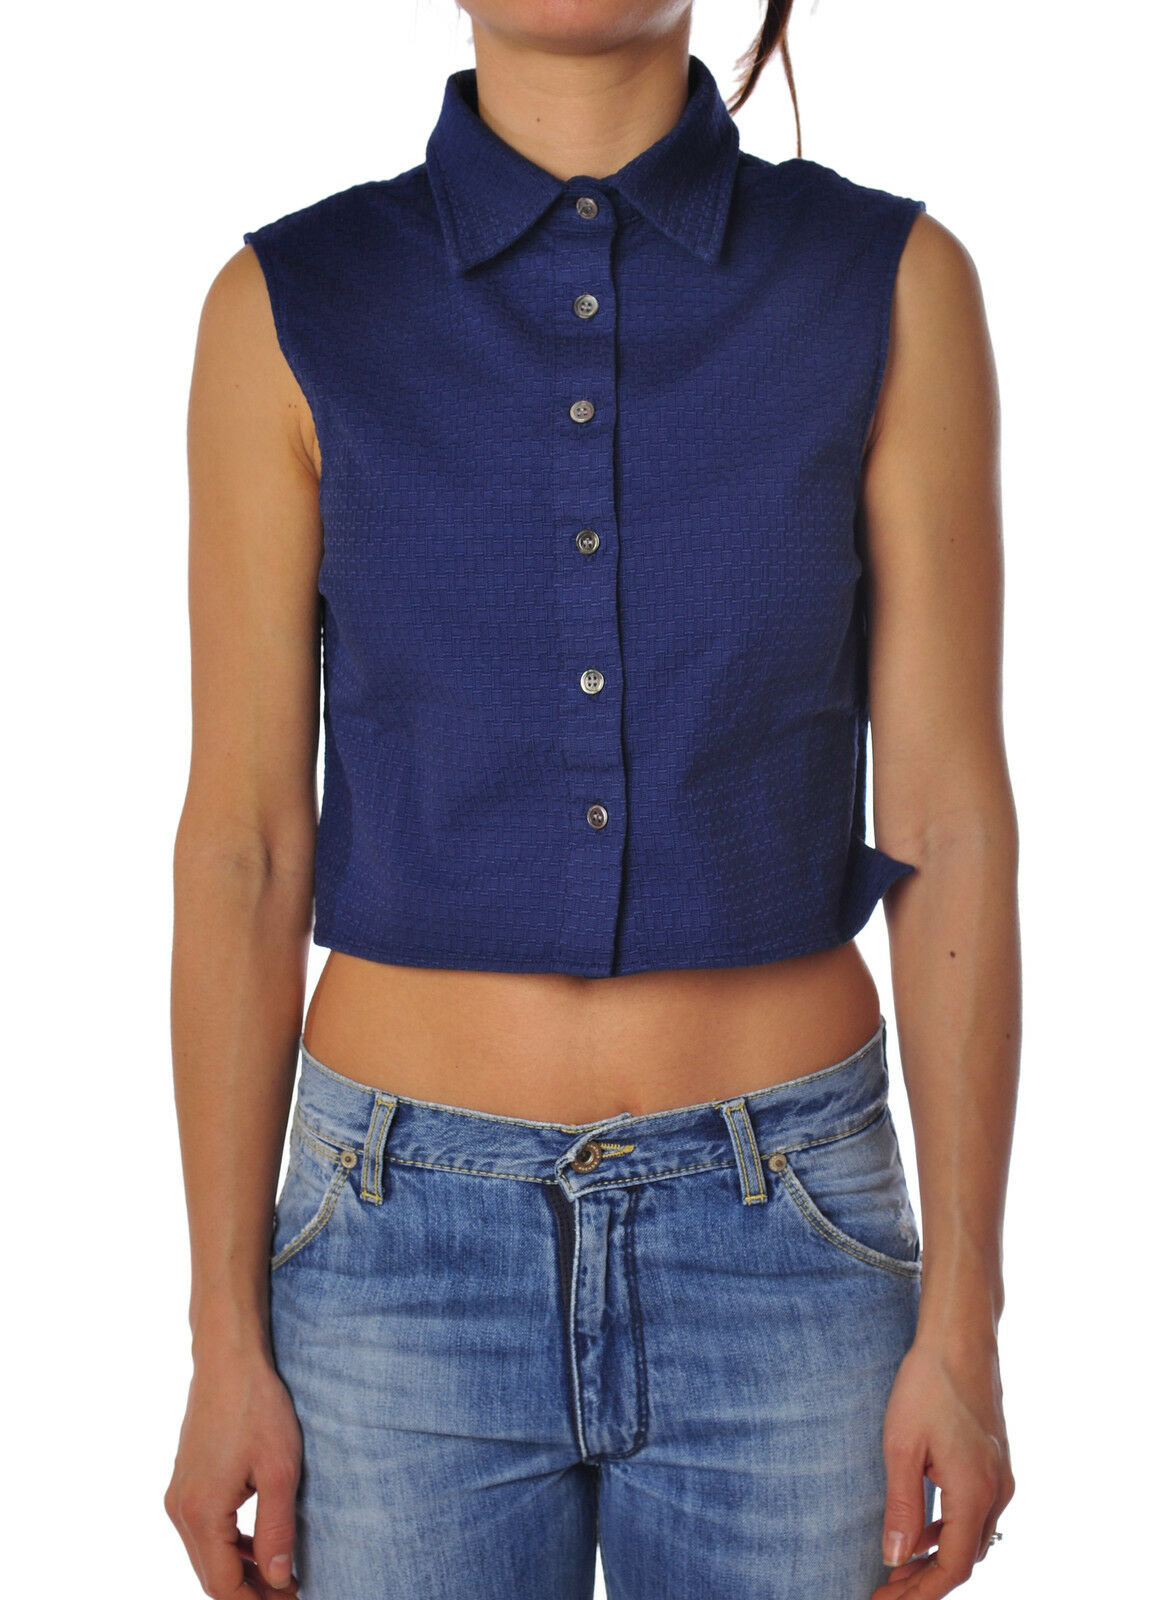 Department 5 - Shirts-Blouses - Woman - Blau - 1522507E191524